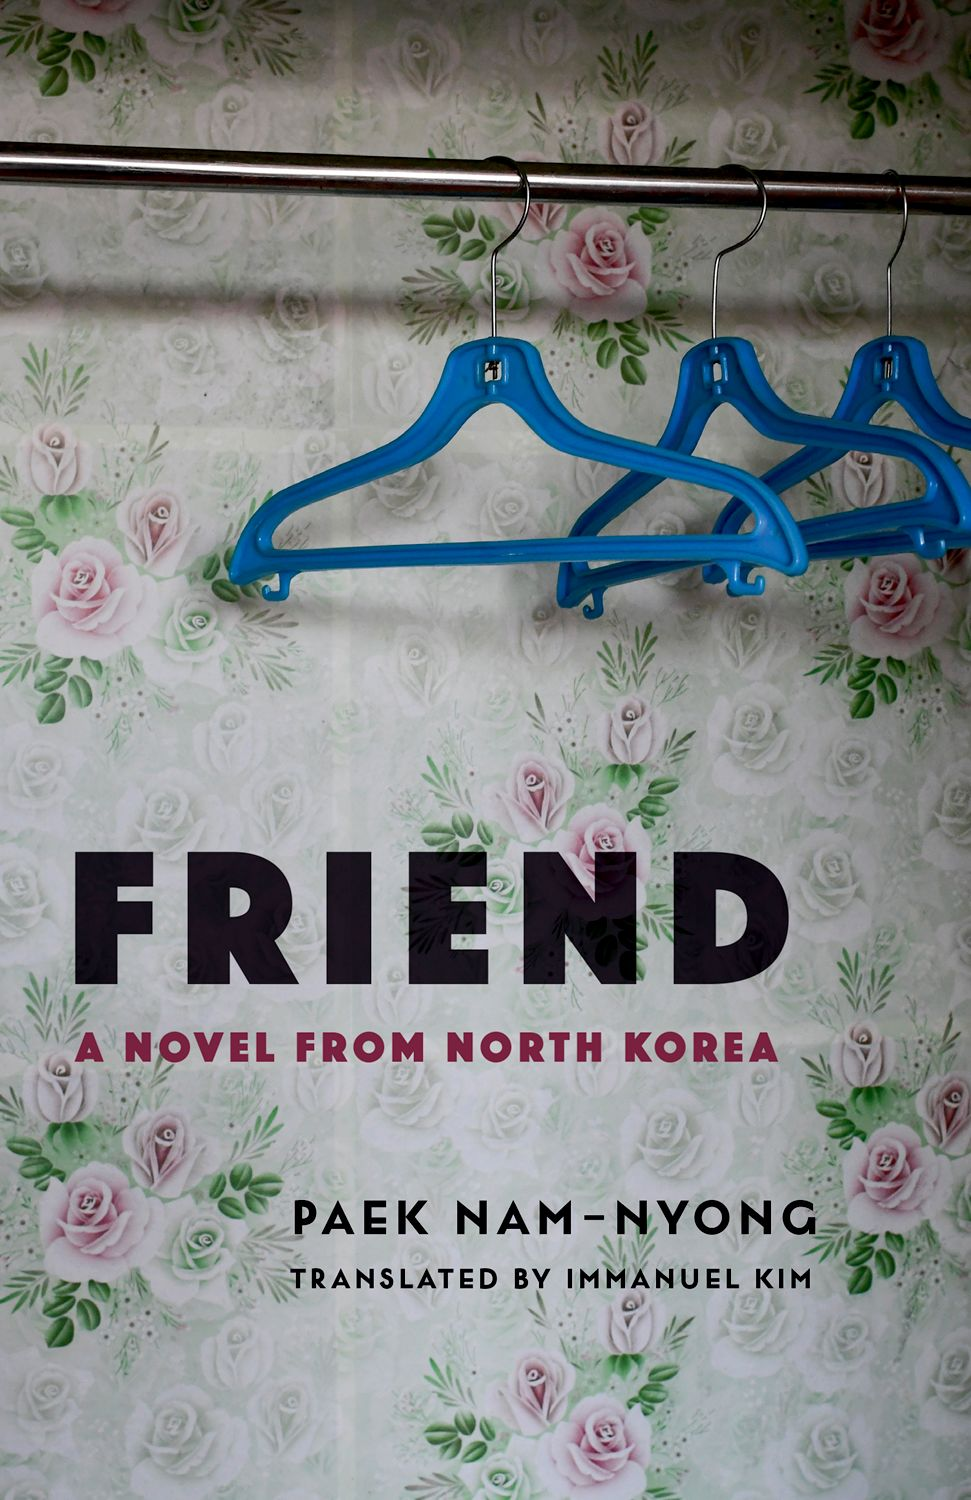 Friend: A Novel from North Korea, Paek Nam-nyong, Immanuel Kim (trans) (Columbia University Press, May 2020)